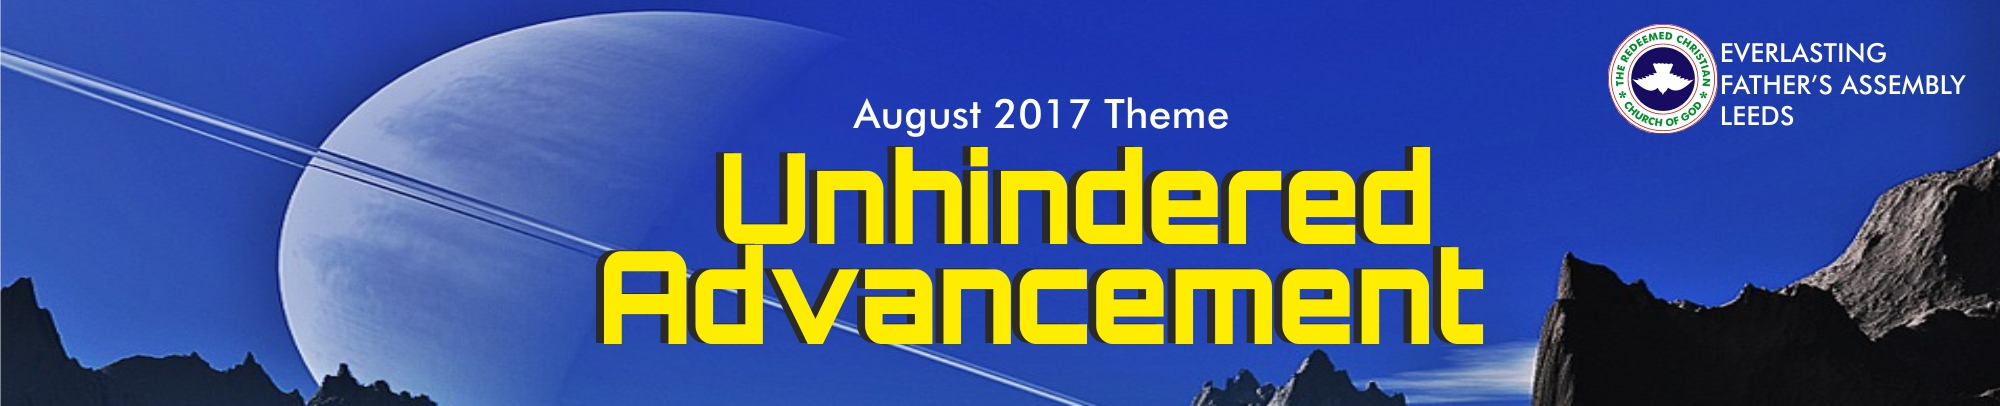 August 2017 Theme- Unhindered Advancement